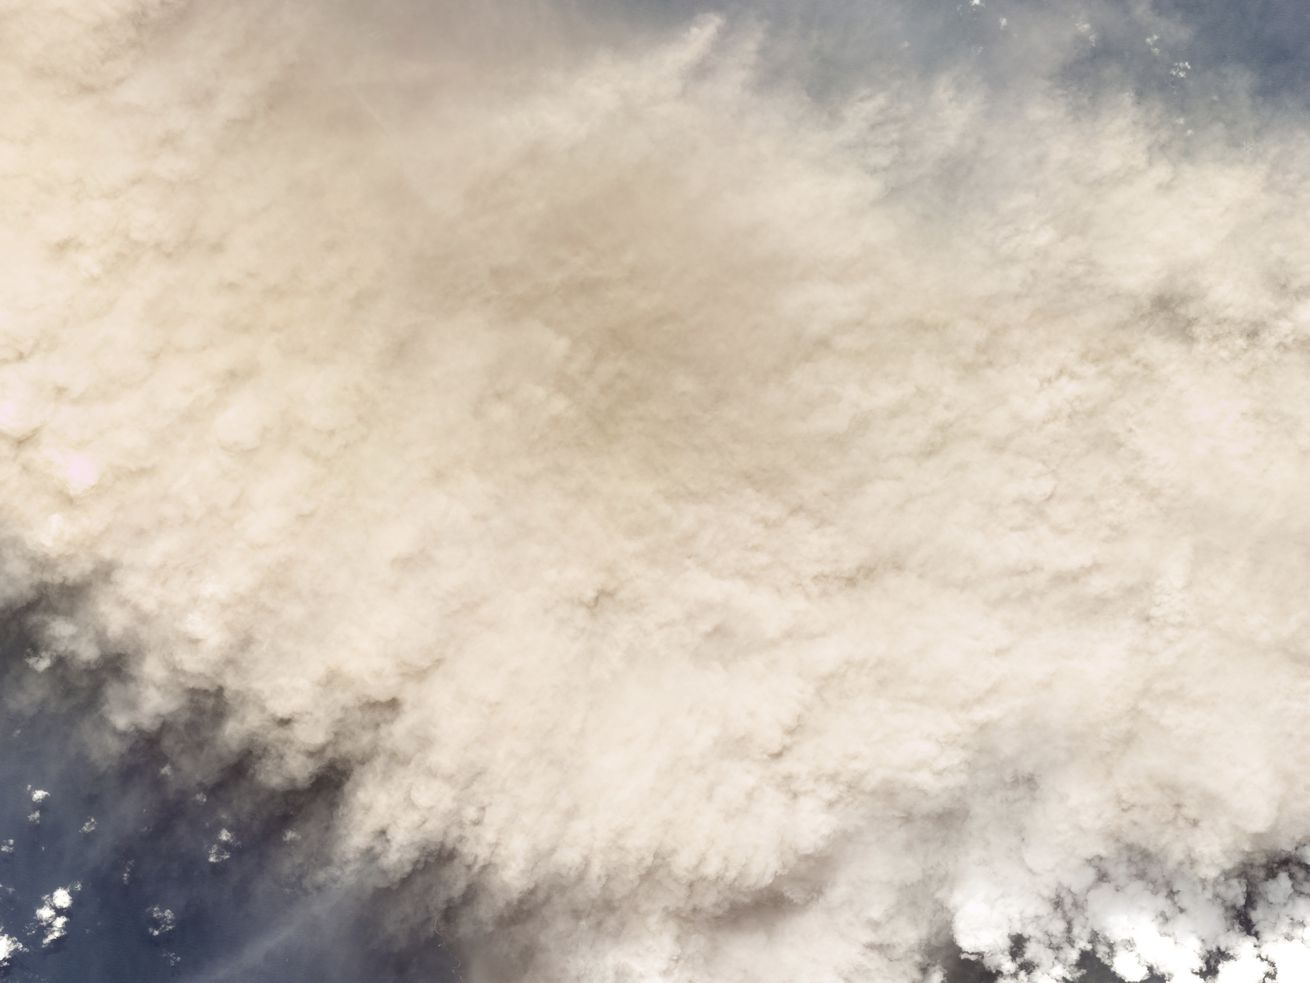 This Planet Labs Inc. satellite photo shows the moments following an eruption of La Soufriere volcano in the Caribbean island of St. Vincent, Friday, April 9, 2021.